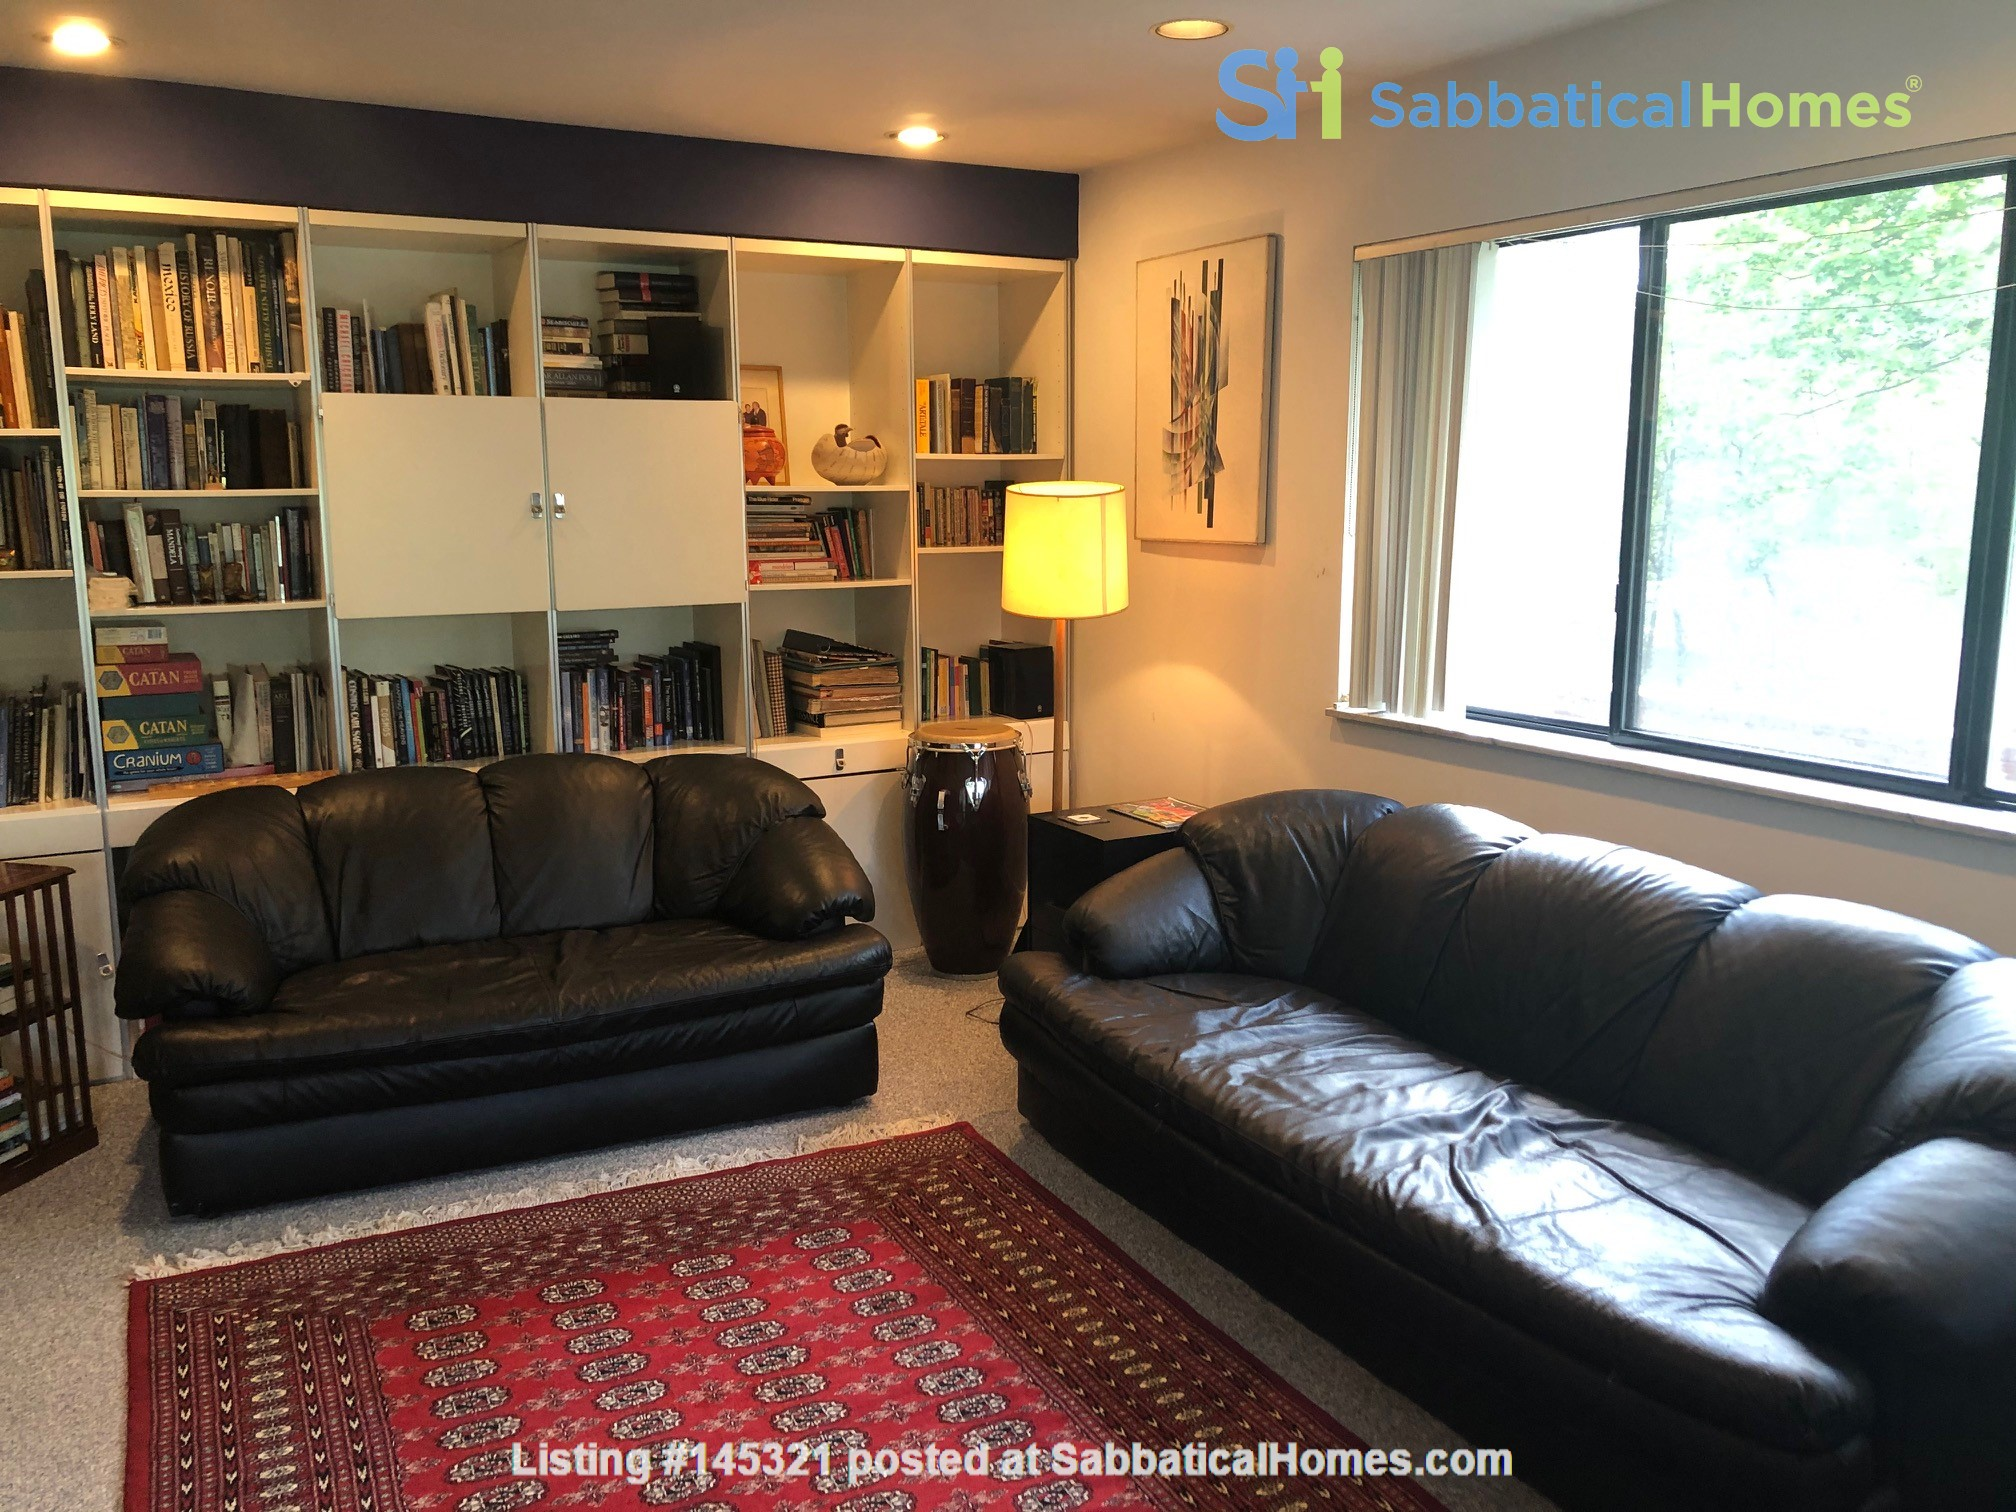 Lovely four bedroom house, wooded setting near UM Central campus & hospital Home Rental in Ann Arbor, Michigan, United States 6